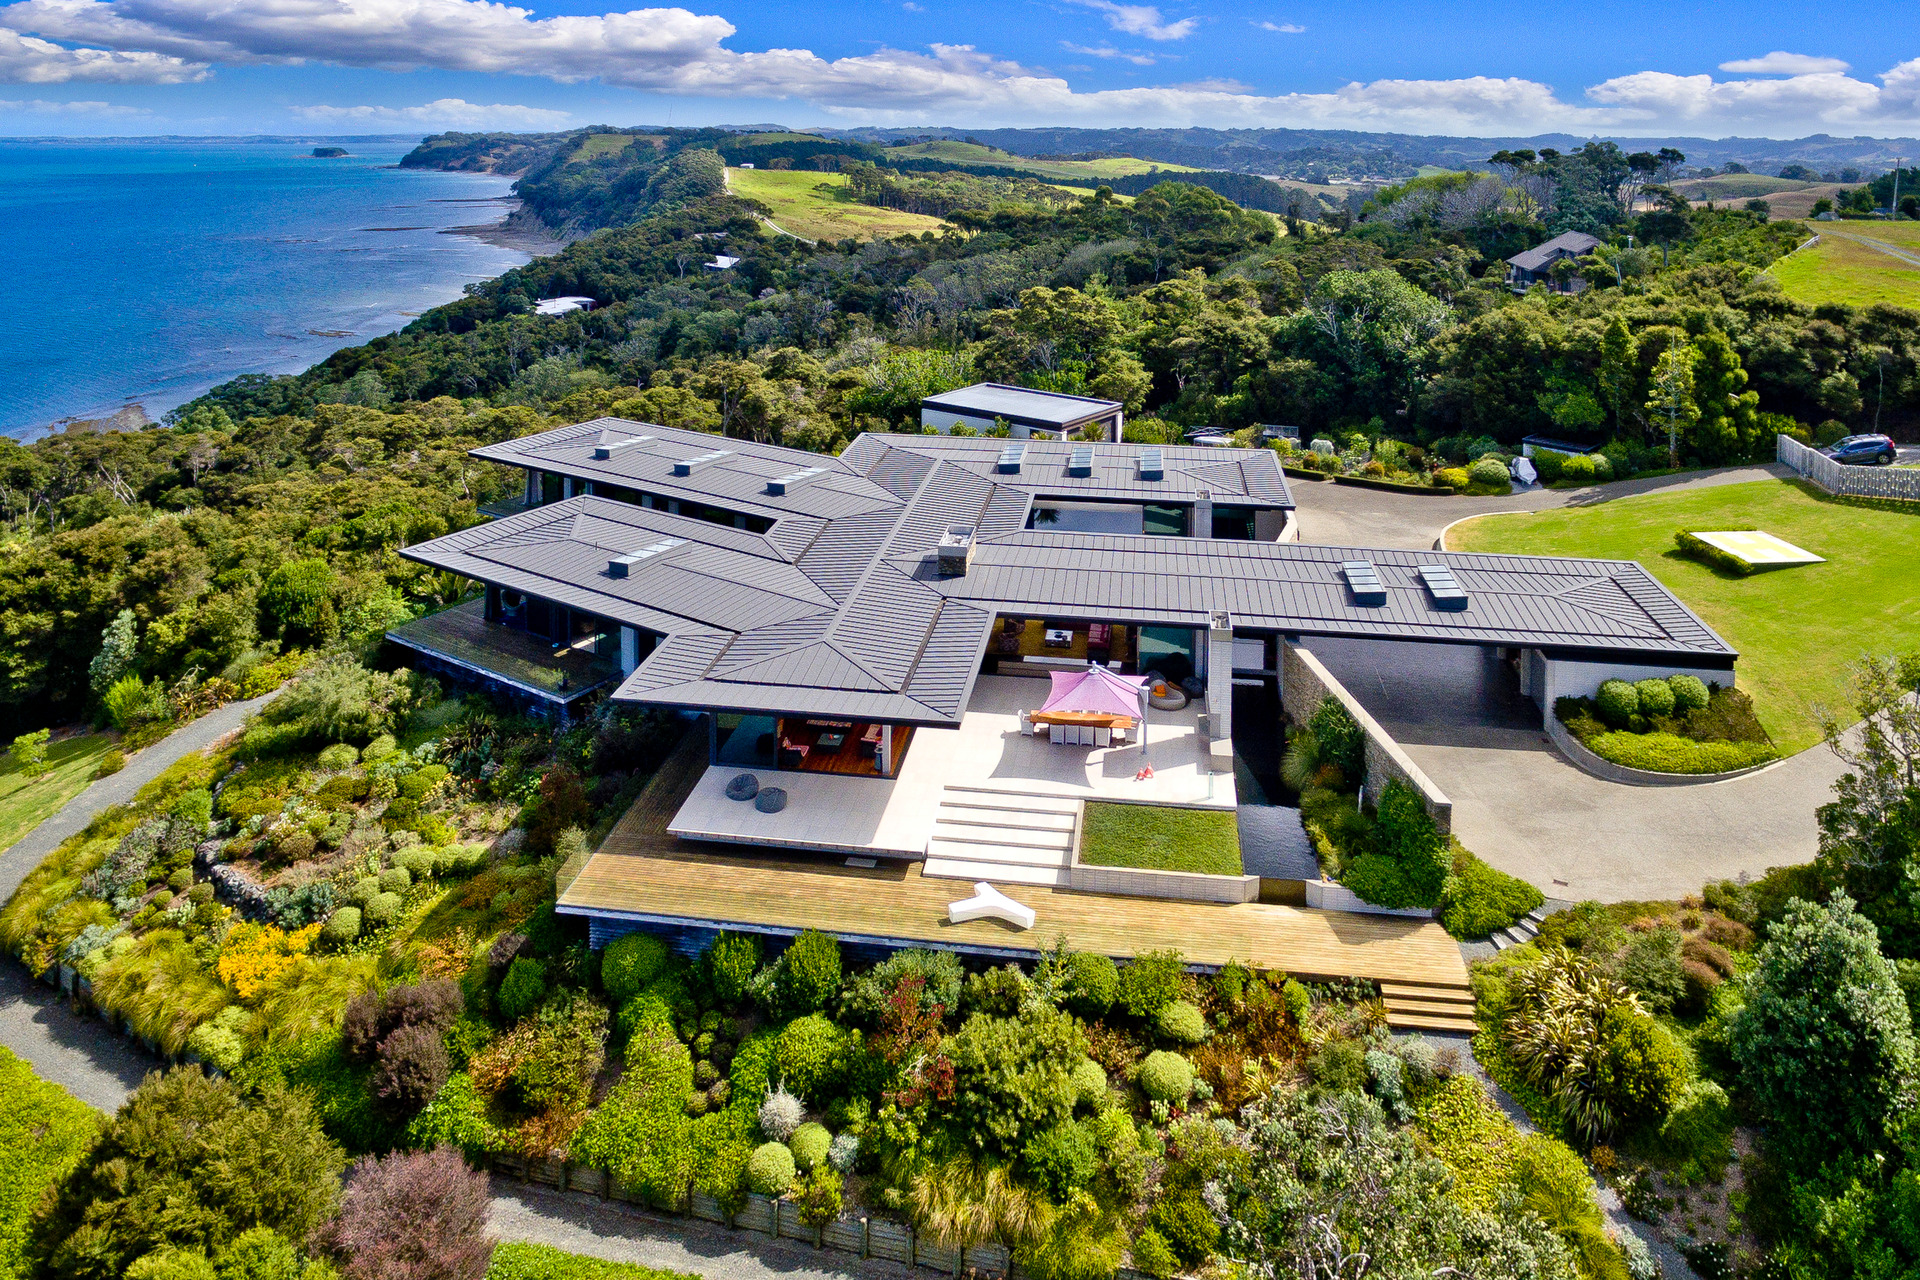 From packing supermarket shelves to owning $15m home